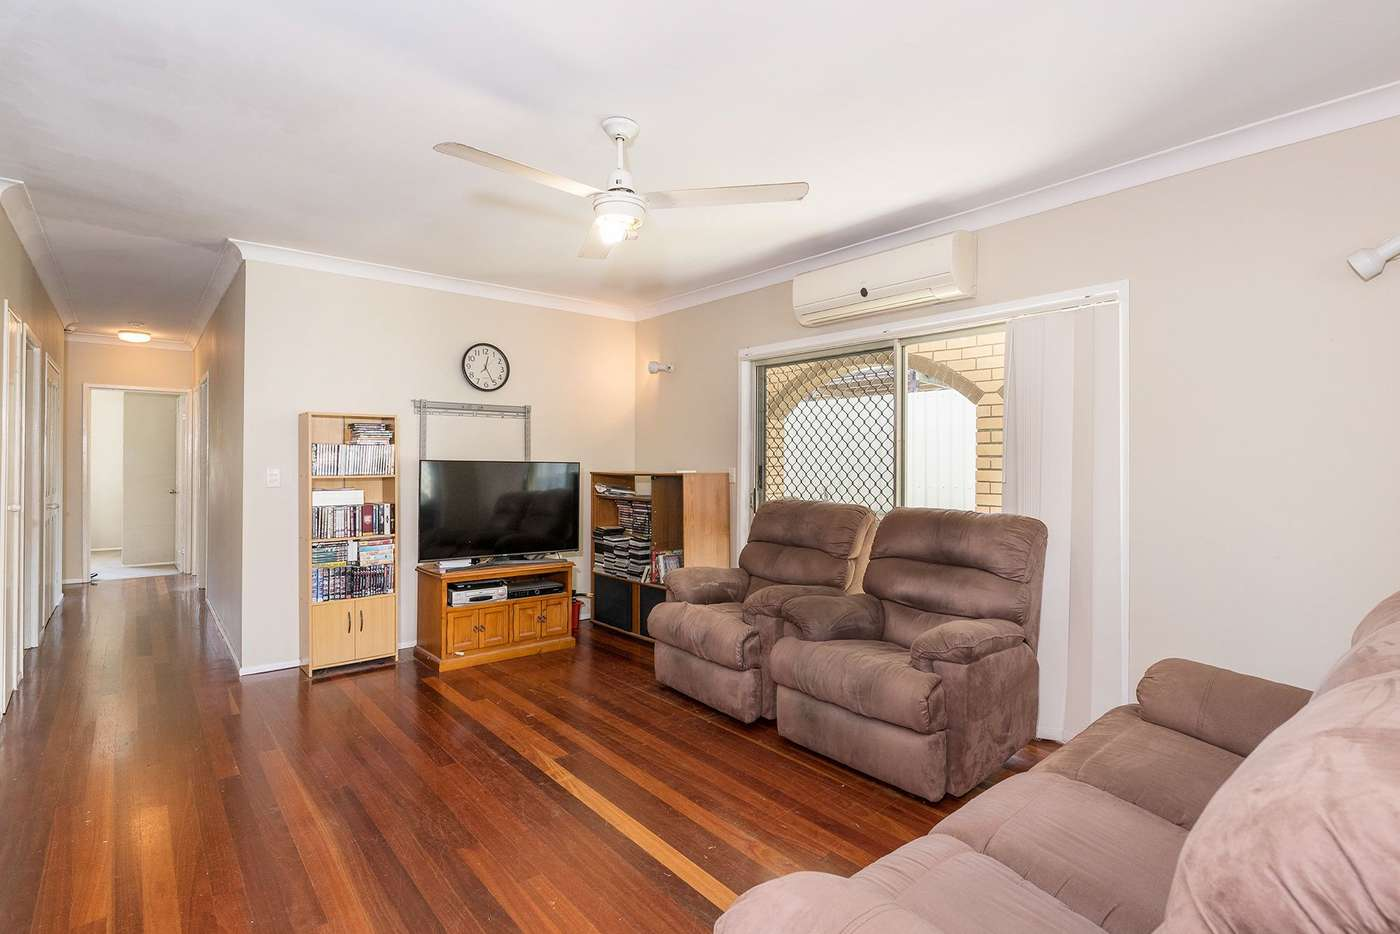 Fifth view of Homely house listing, 115 Gaynesford Street, Mount Gravatt QLD 4122